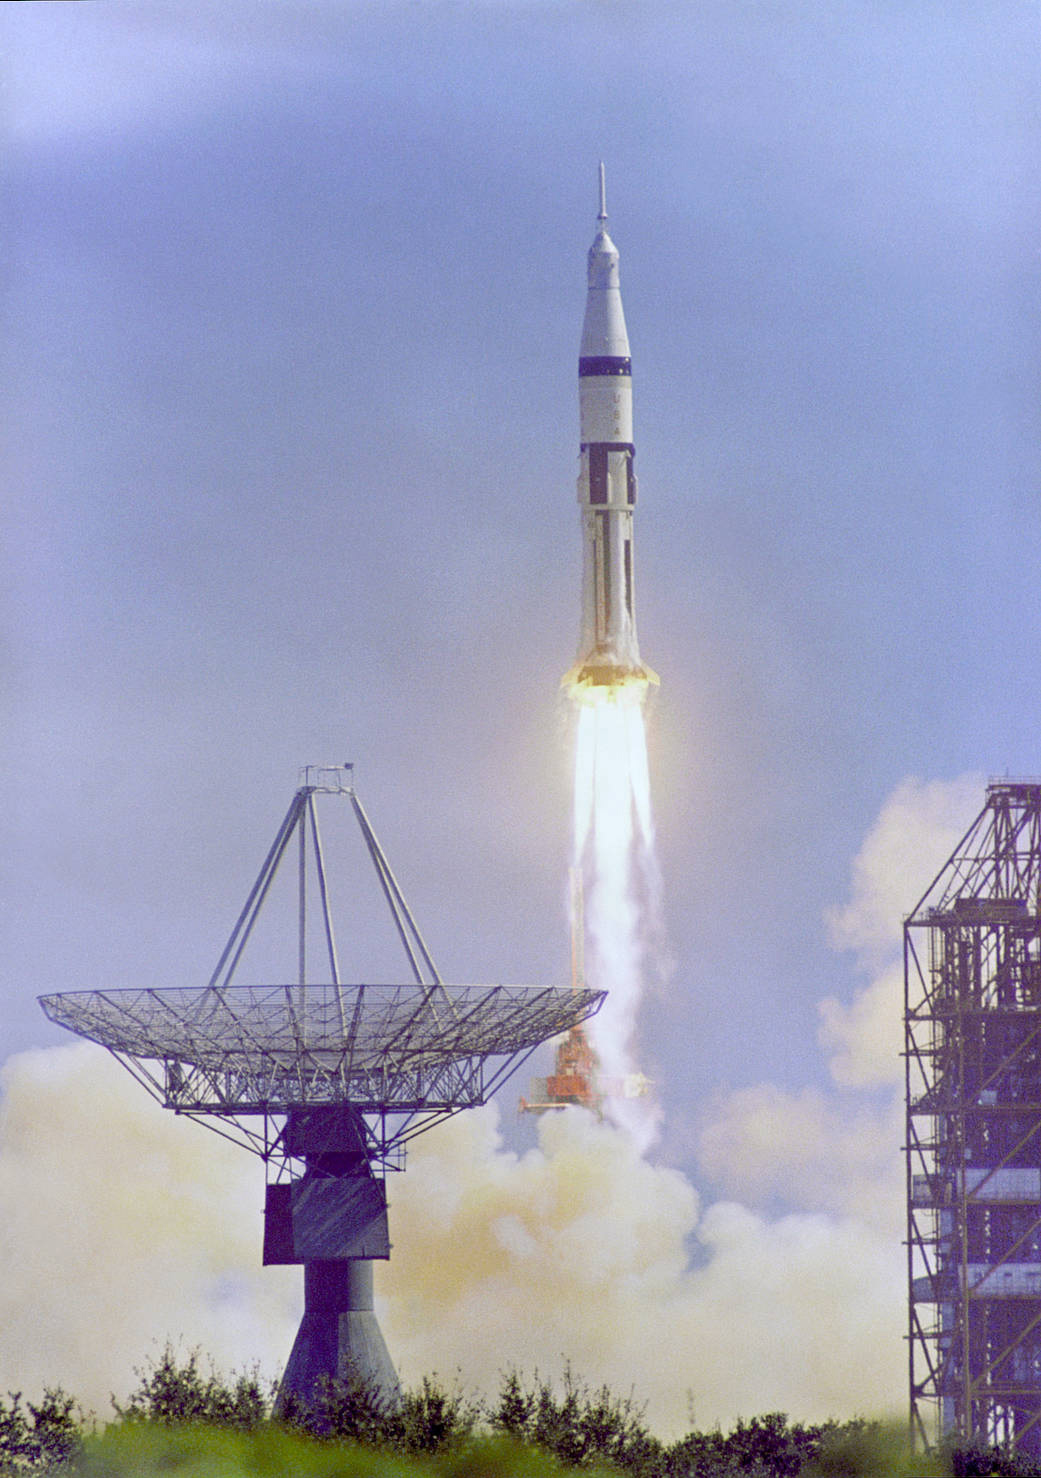 Apollo 7 spacecraft launching with large antenna in foreground